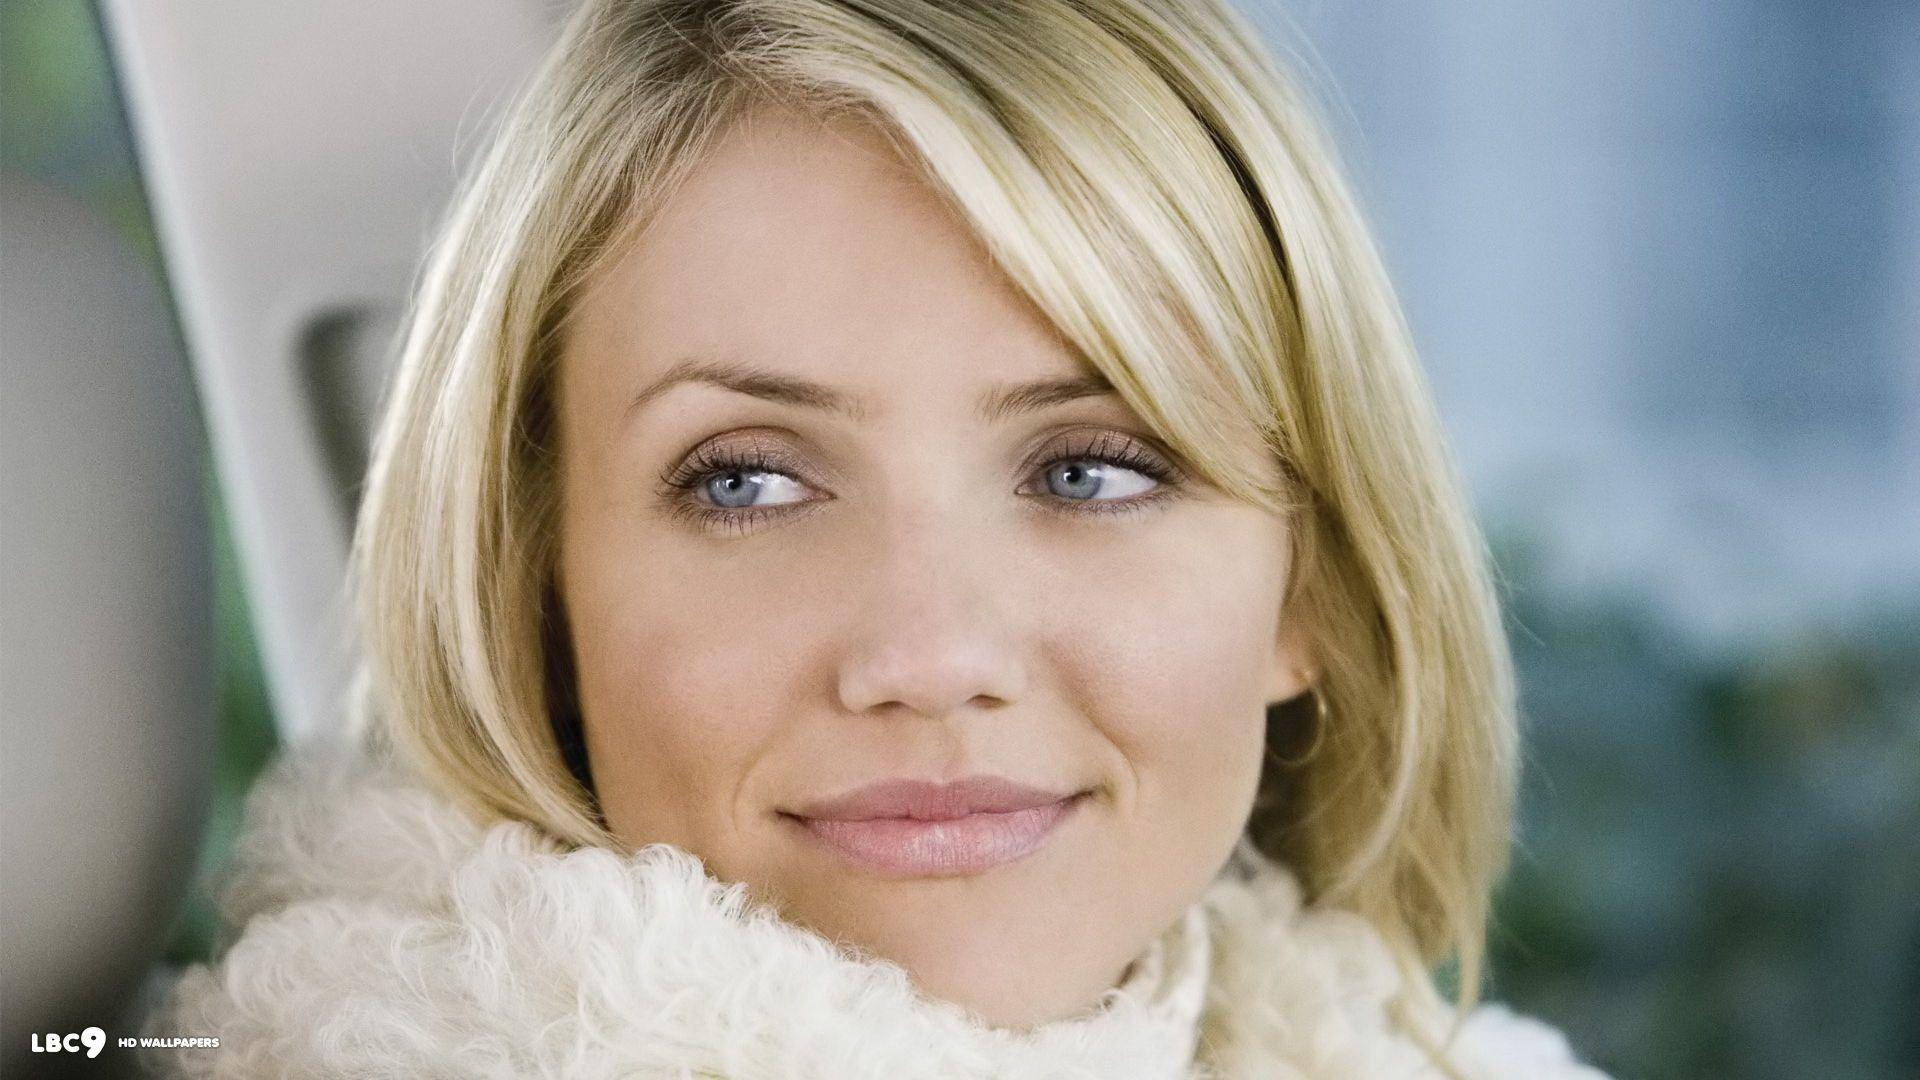 cameron diaz wallpaper 12/22 | actresses hd backgrounds